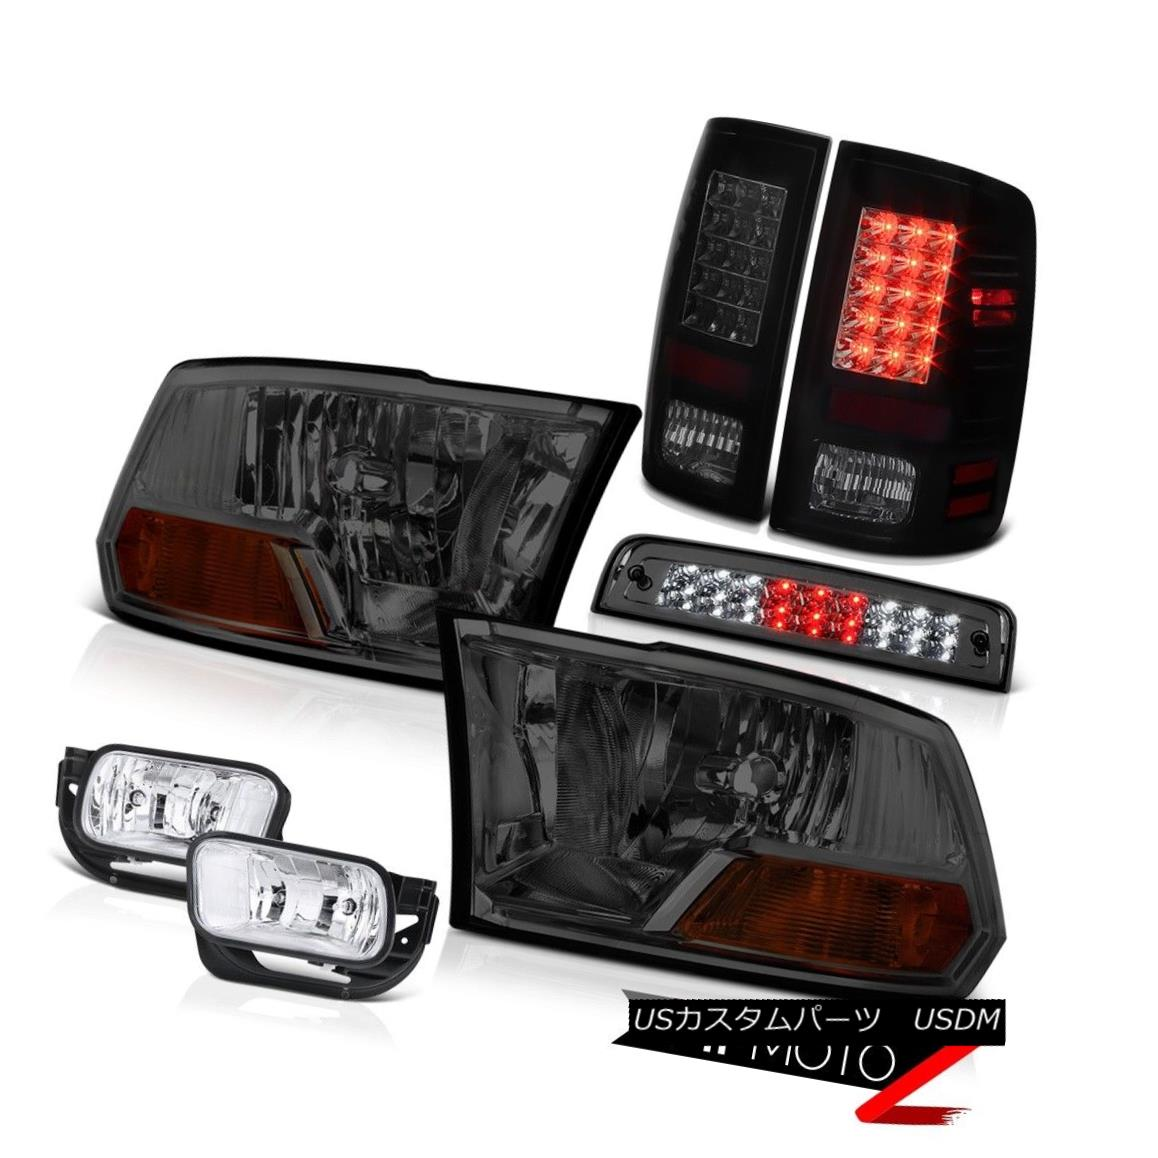 テールライト 09-13 Dodge Ram 1500 6.4L Foglamps Smokey Roof Cab Lamp Taillamps Headlights SMD 09-13 Dodge Ram 1500 6.4L FoglampsスモーキールーフキャブランプタイルランプヘッドライトSMD